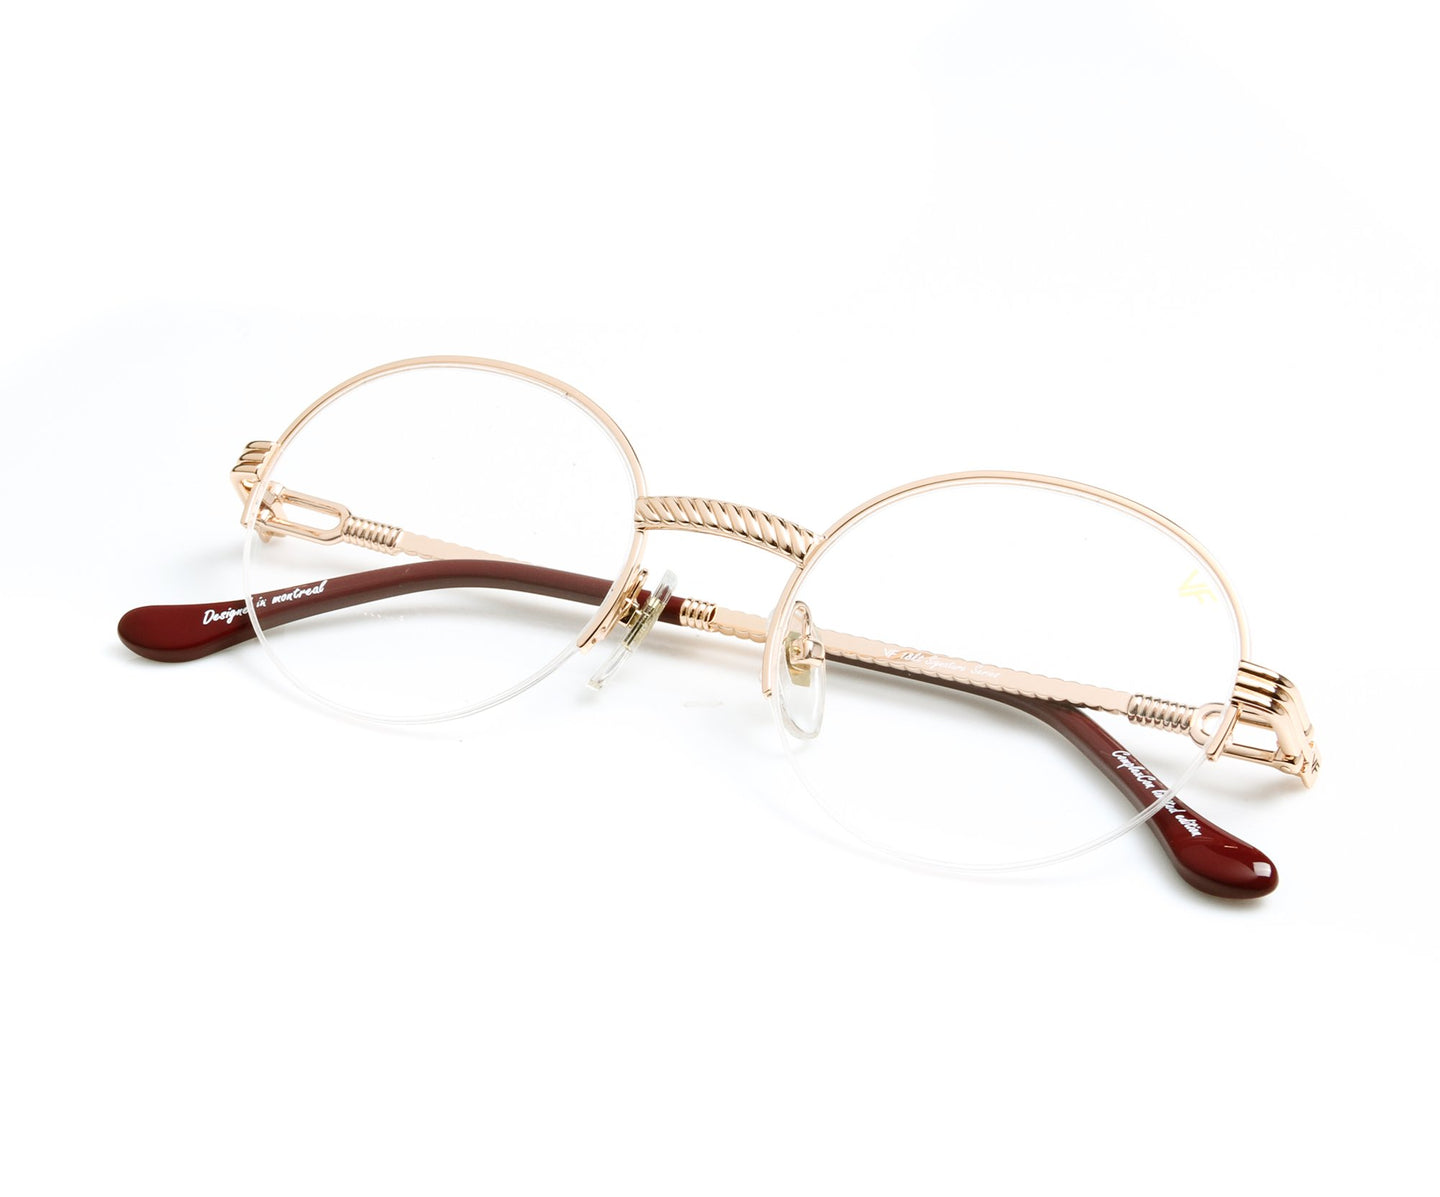 VF 508 Half Rim 18KT Rose Gold (Clear Lens) Thumb, VF by Vintage Frames , glasses frames, eyeglasses online, eyeglass frames, mens glasses, womens glasses, buy glasses online, designer eyeglasses, vintage sunglasses, retro sunglasses, vintage glasses, sunglass, eyeglass, glasses, lens, vintage frames company, vf